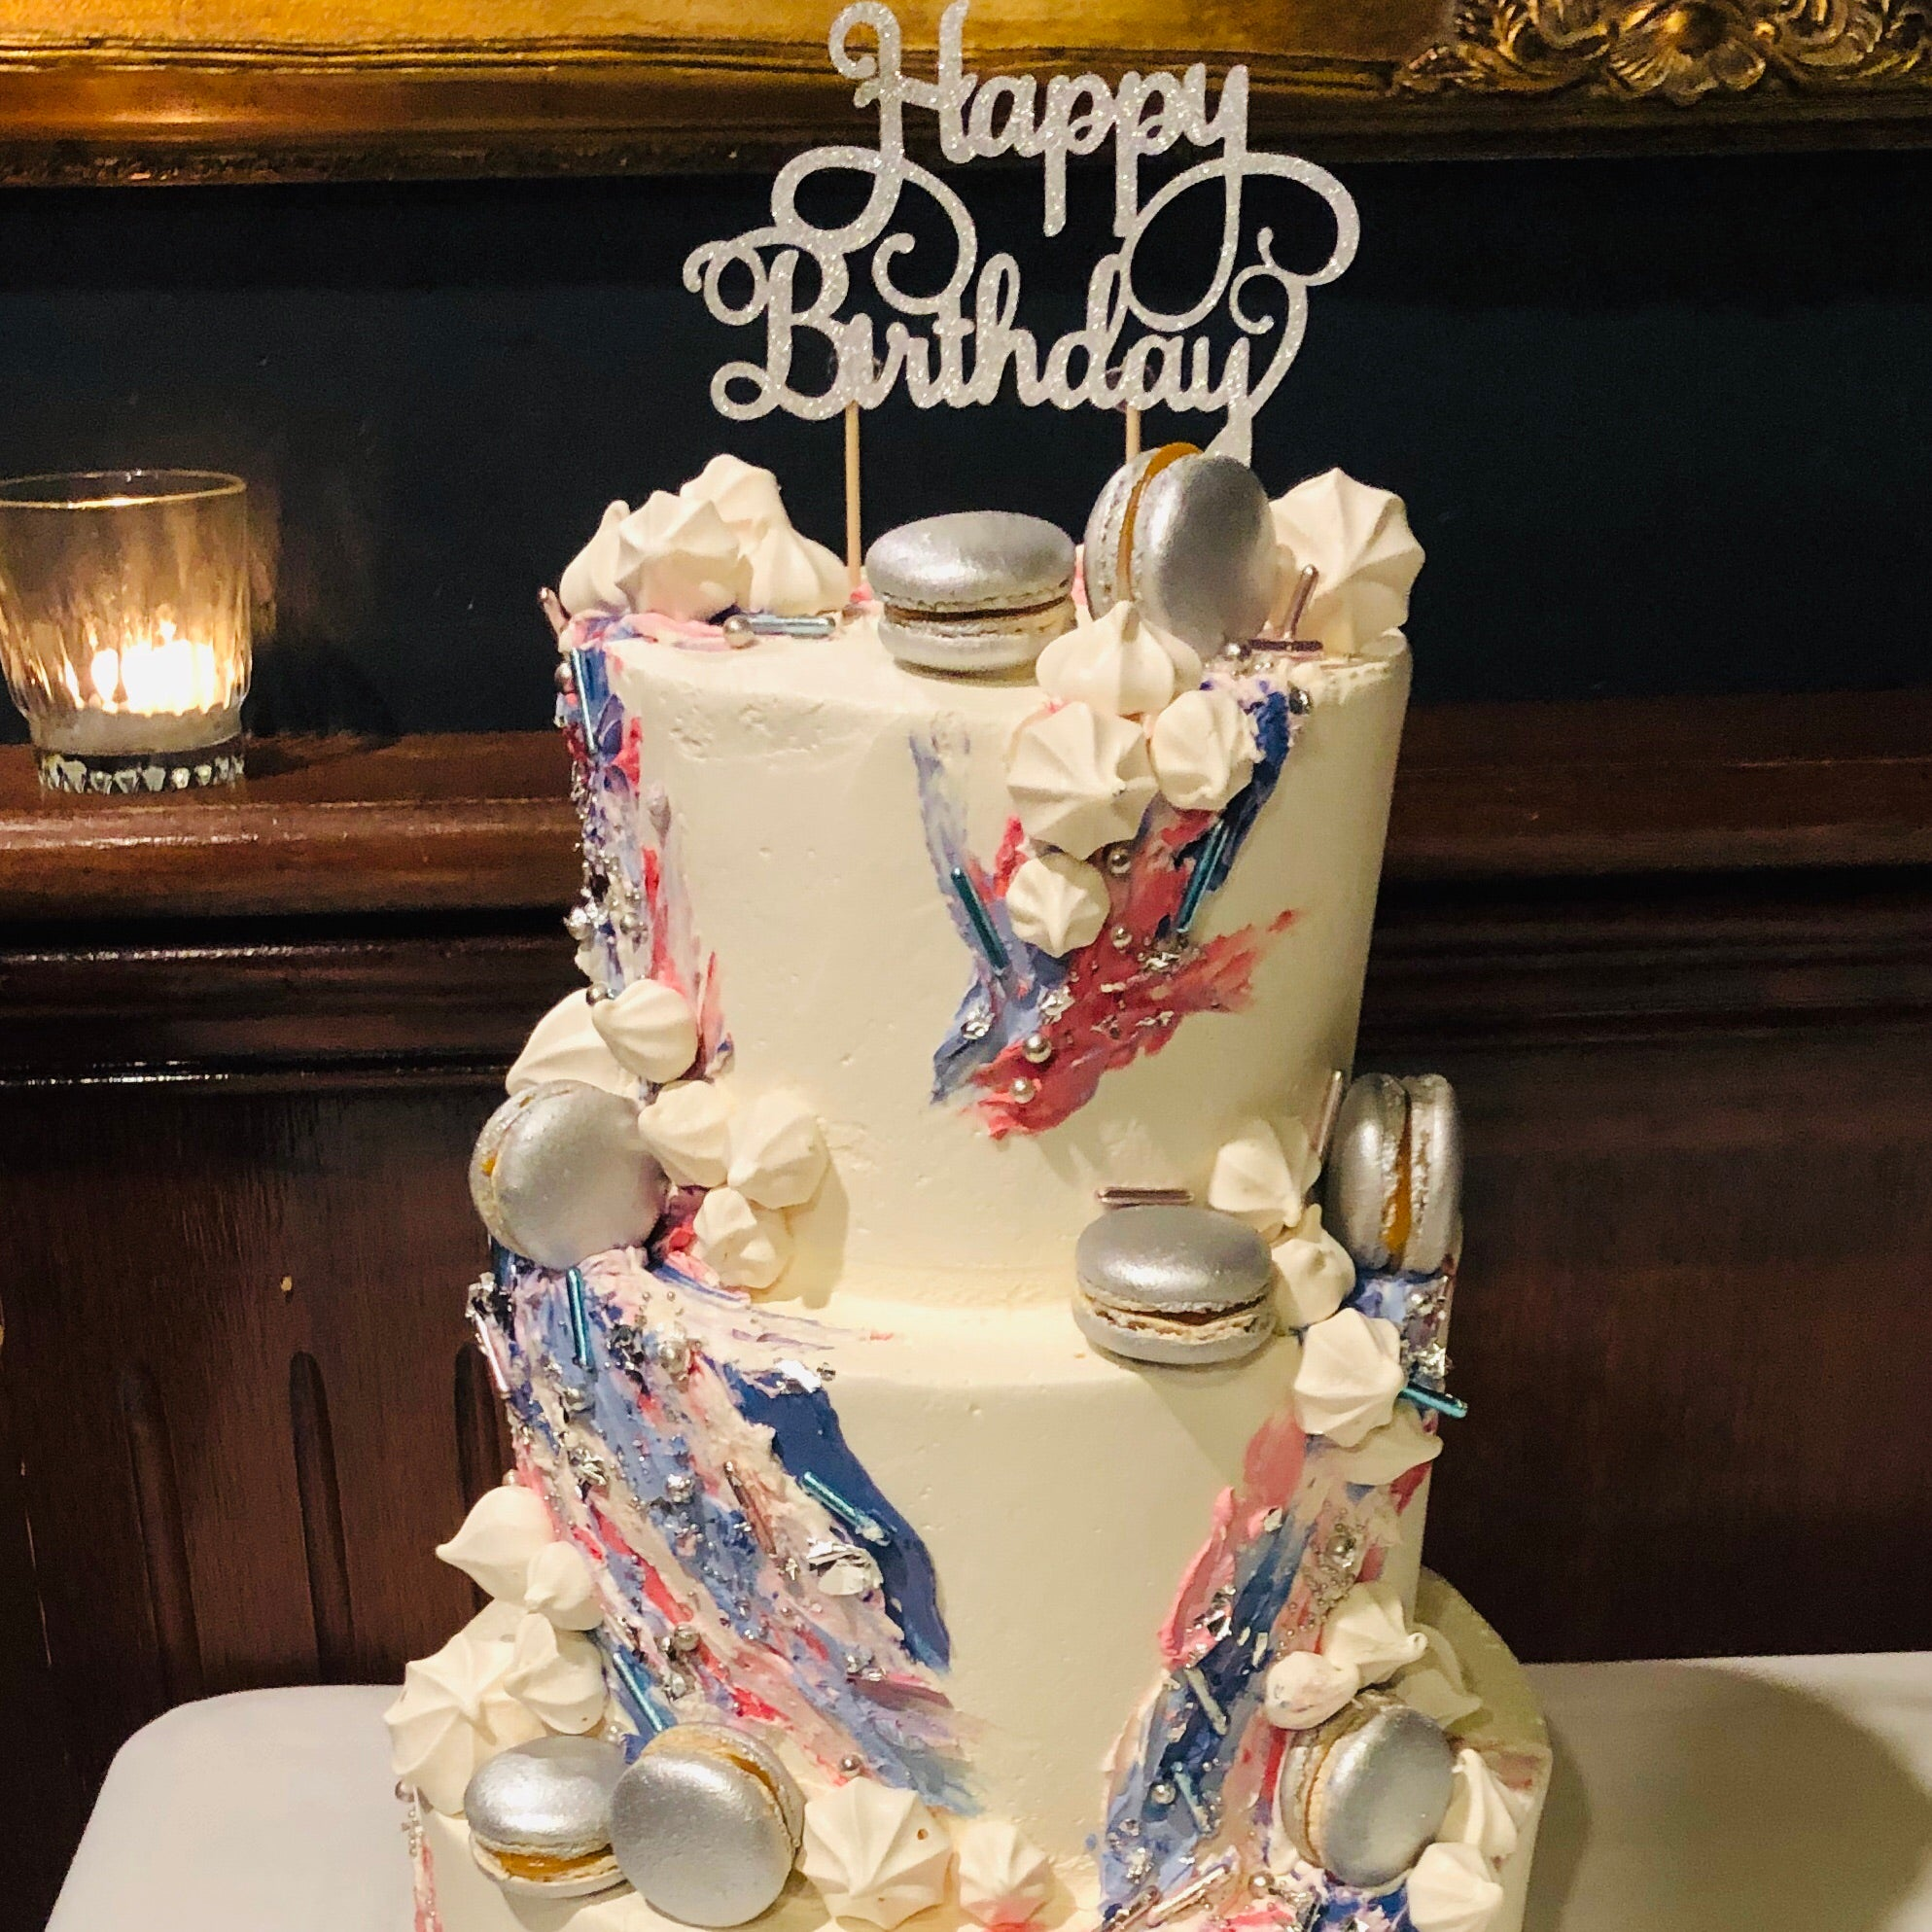 Gluten Free Painted Buttercream cake